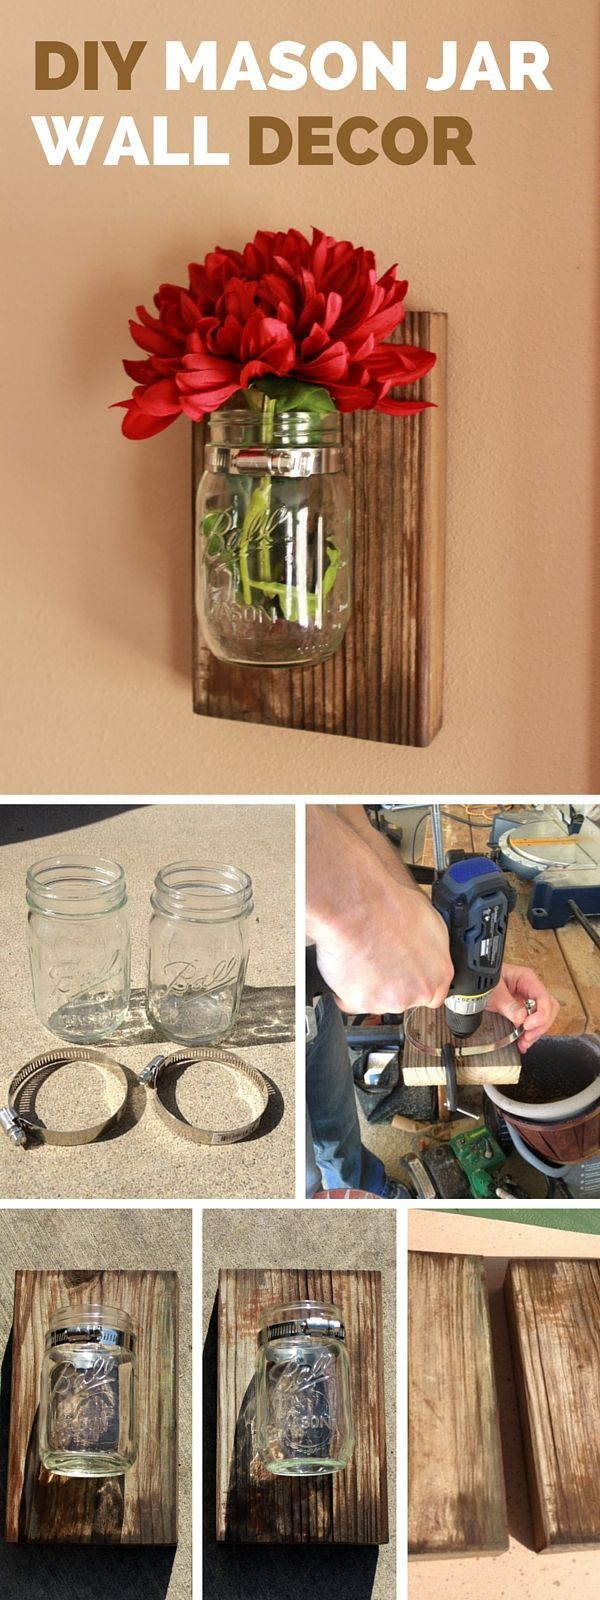 nice 20 Rustic DIY and Handcrafted Accents to Bring Warmth to Your Home Decor